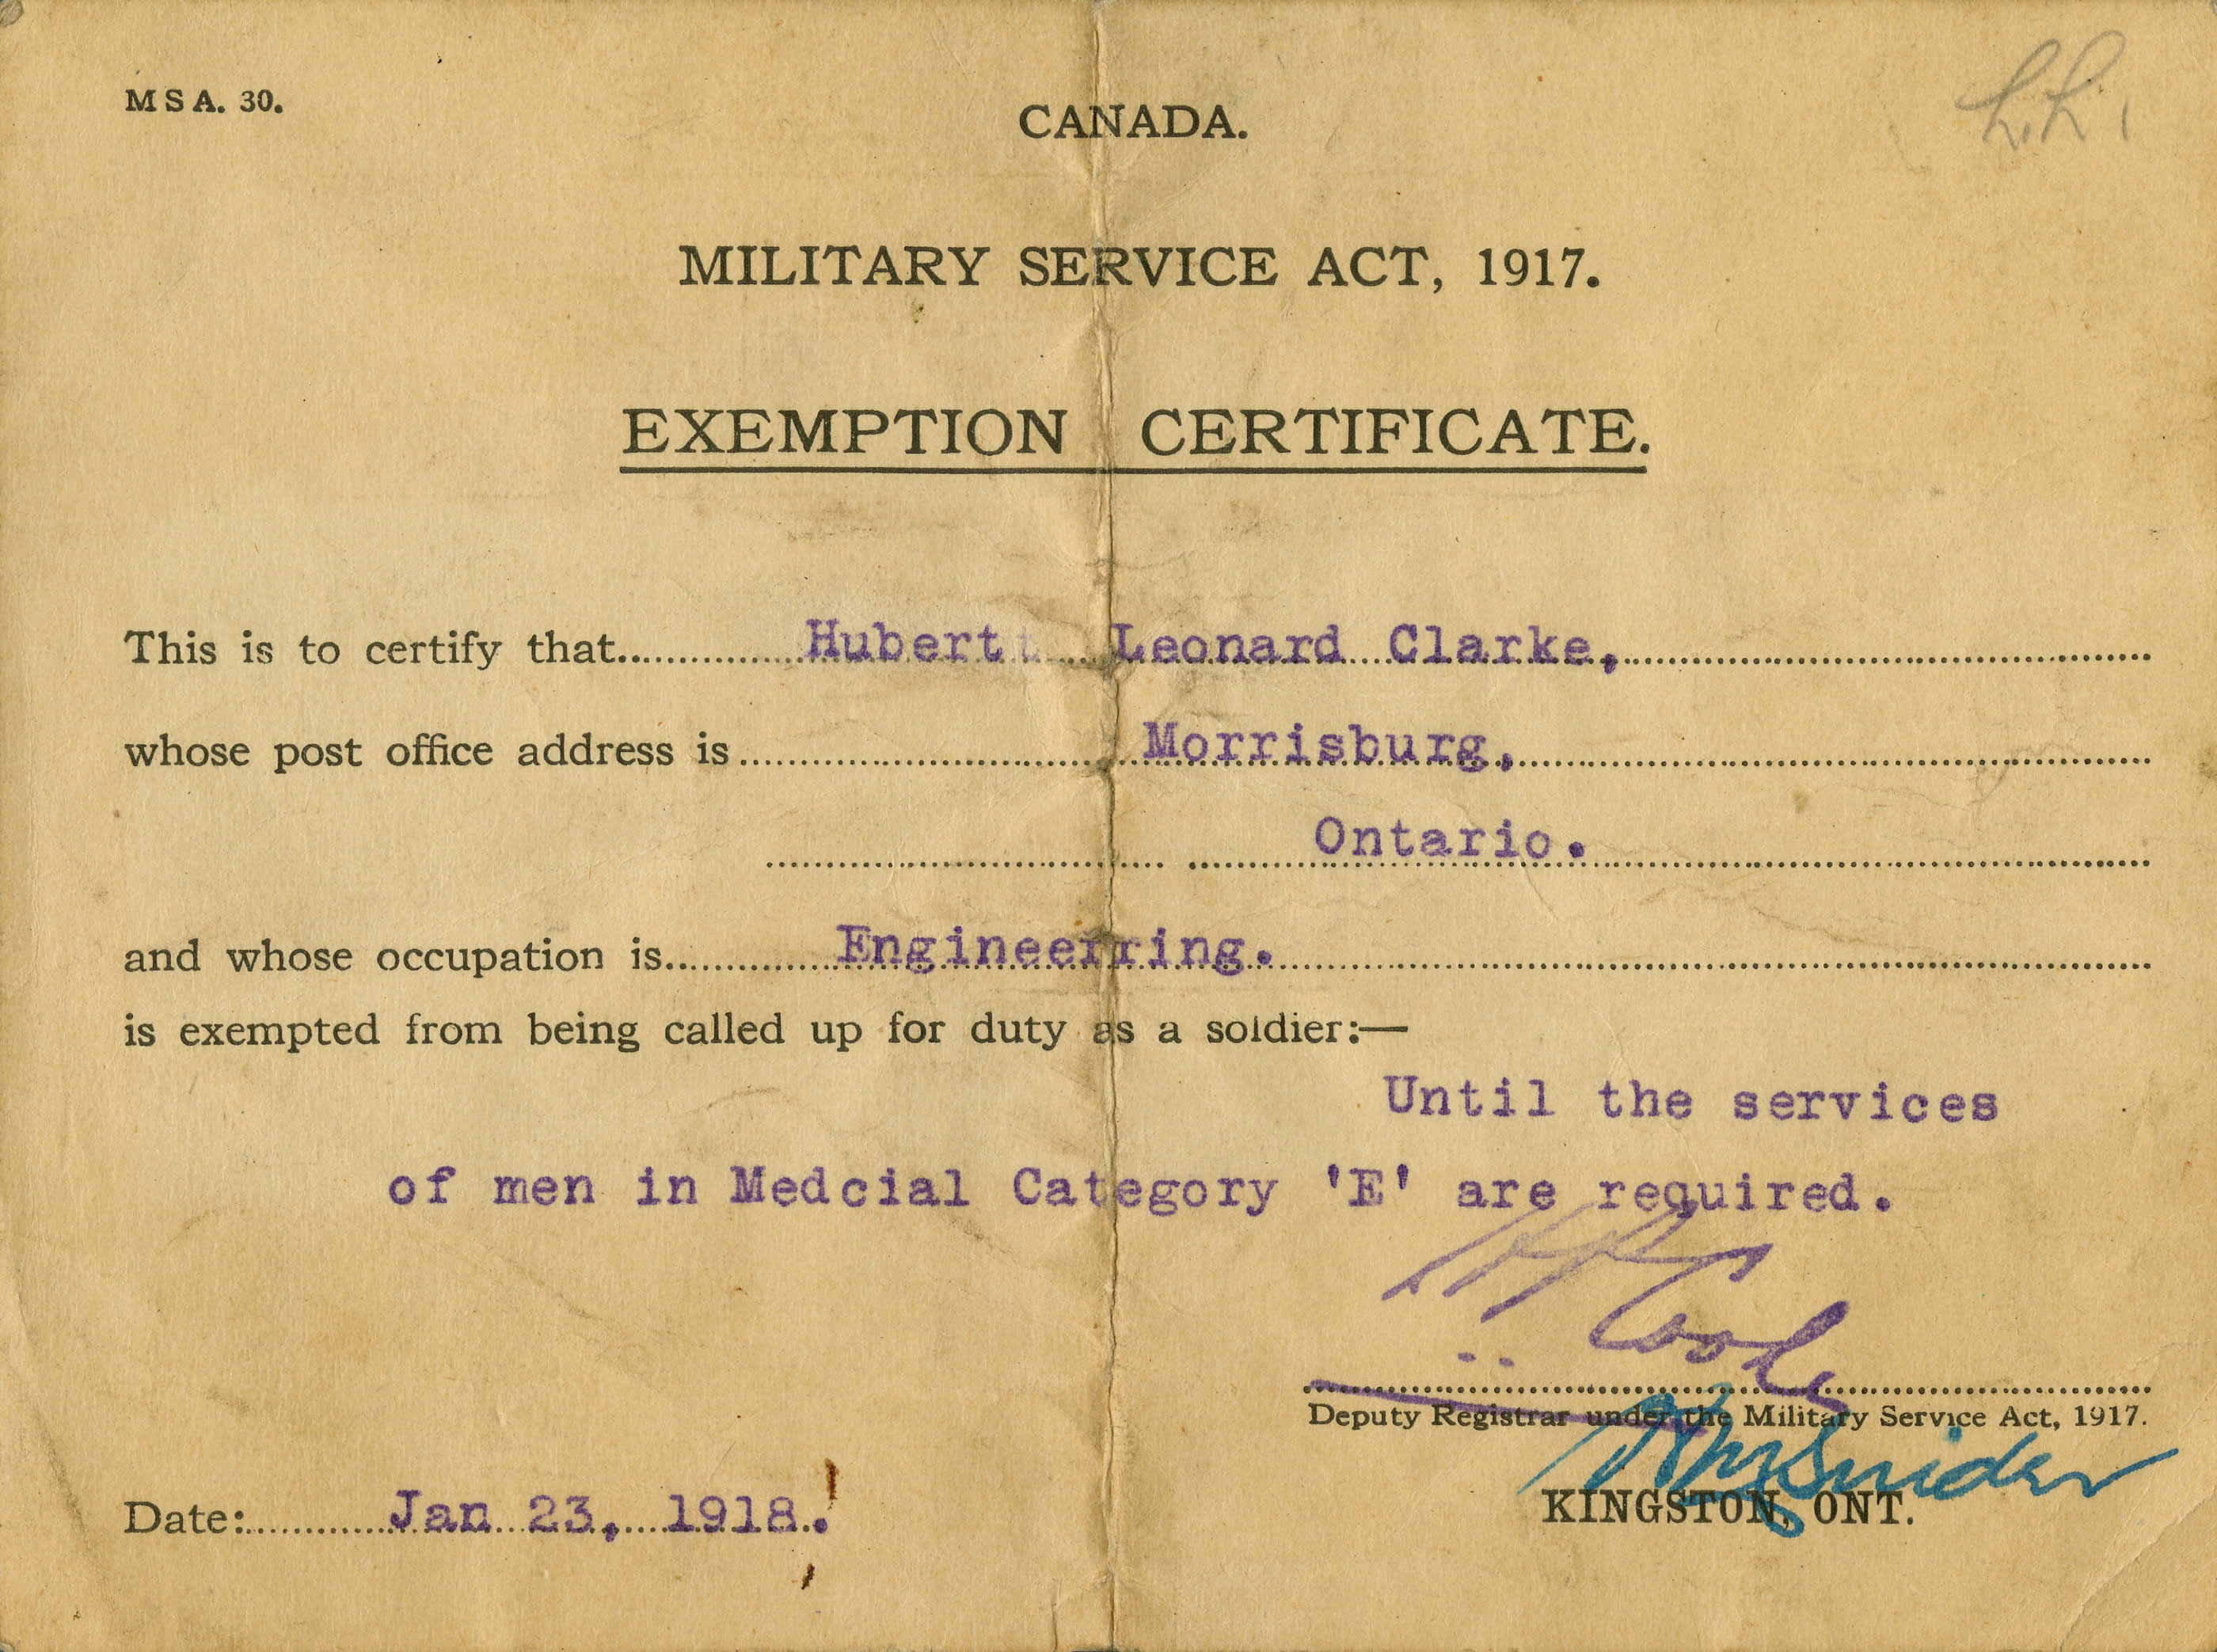 Government documents exemption certificate canada and the first exemption certificate altavistaventures Image collections